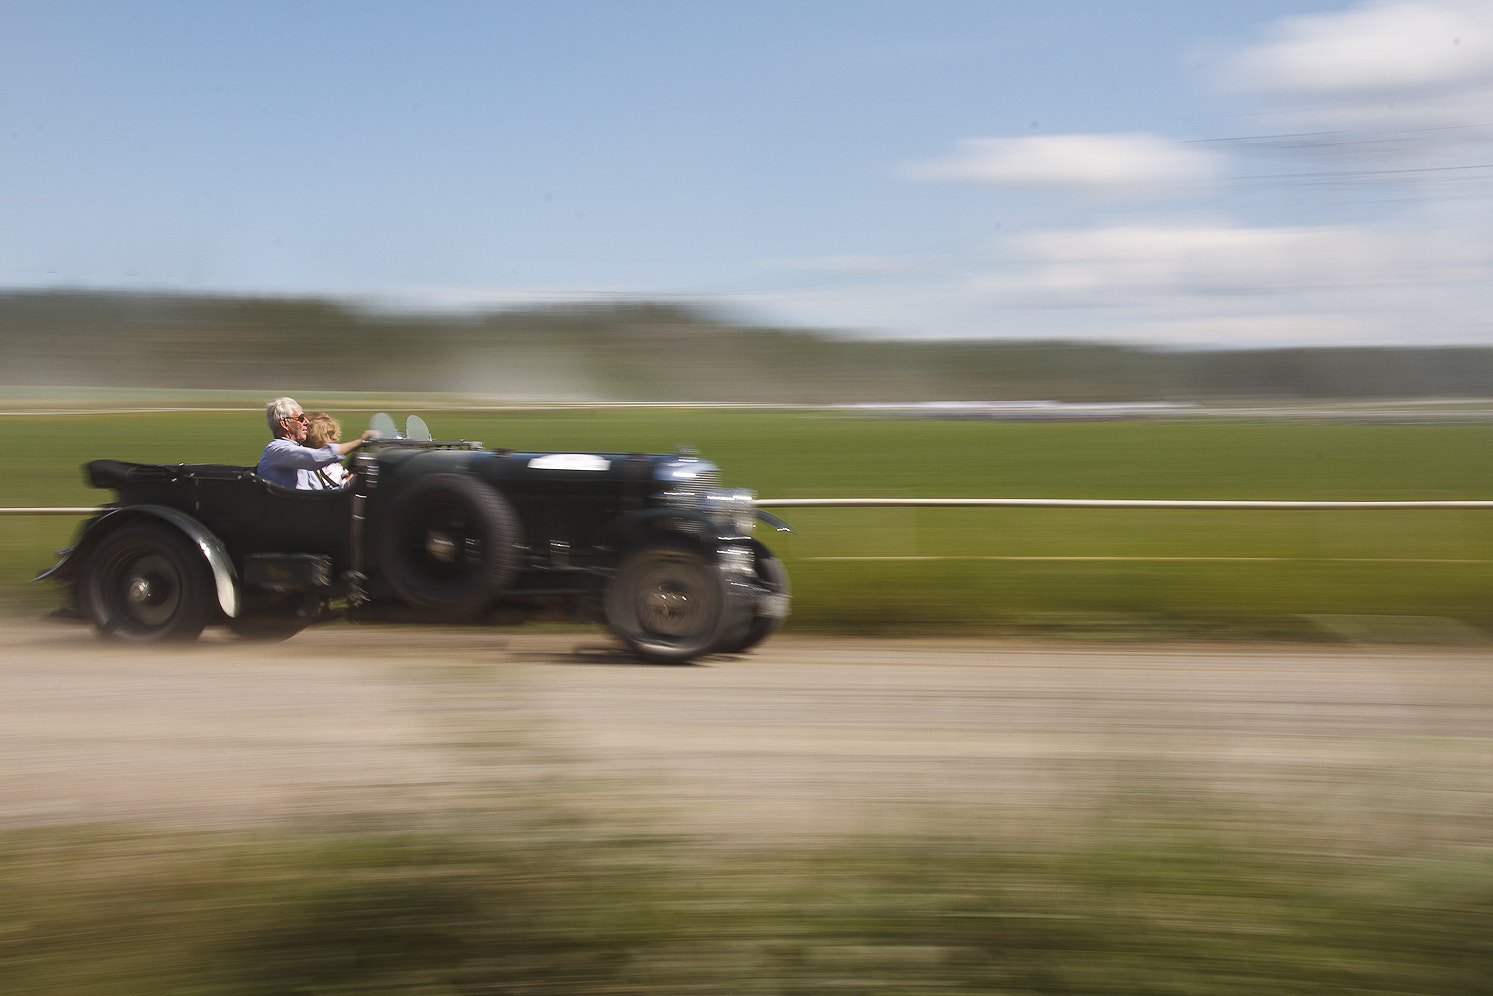 Photograph Vintage Bentley Race by Christer Häggqvist on 500px